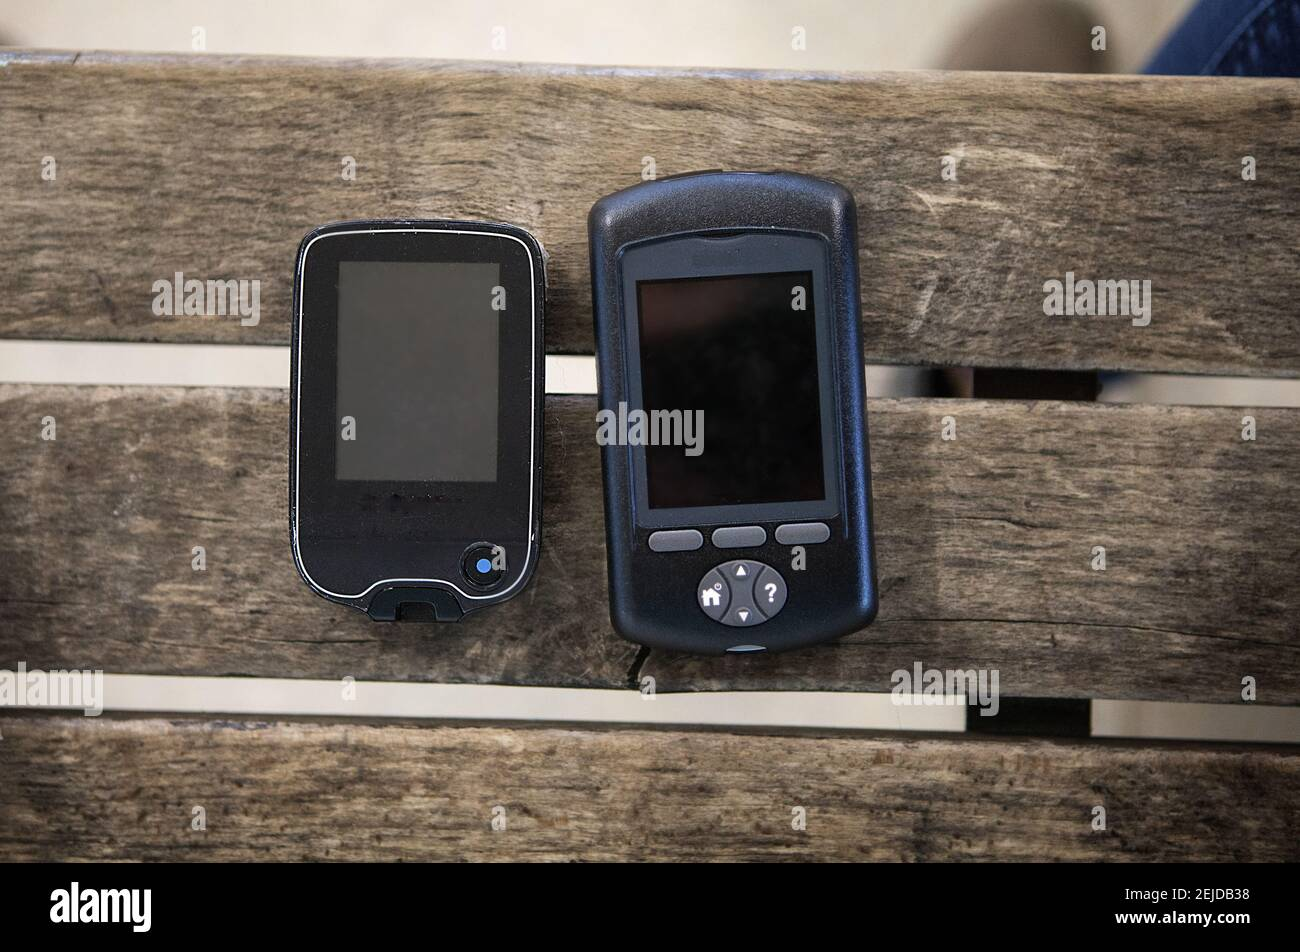 Blood glucose sensor for controlling blood sugar and an insulin pump for delivering insulin. Stock Photo